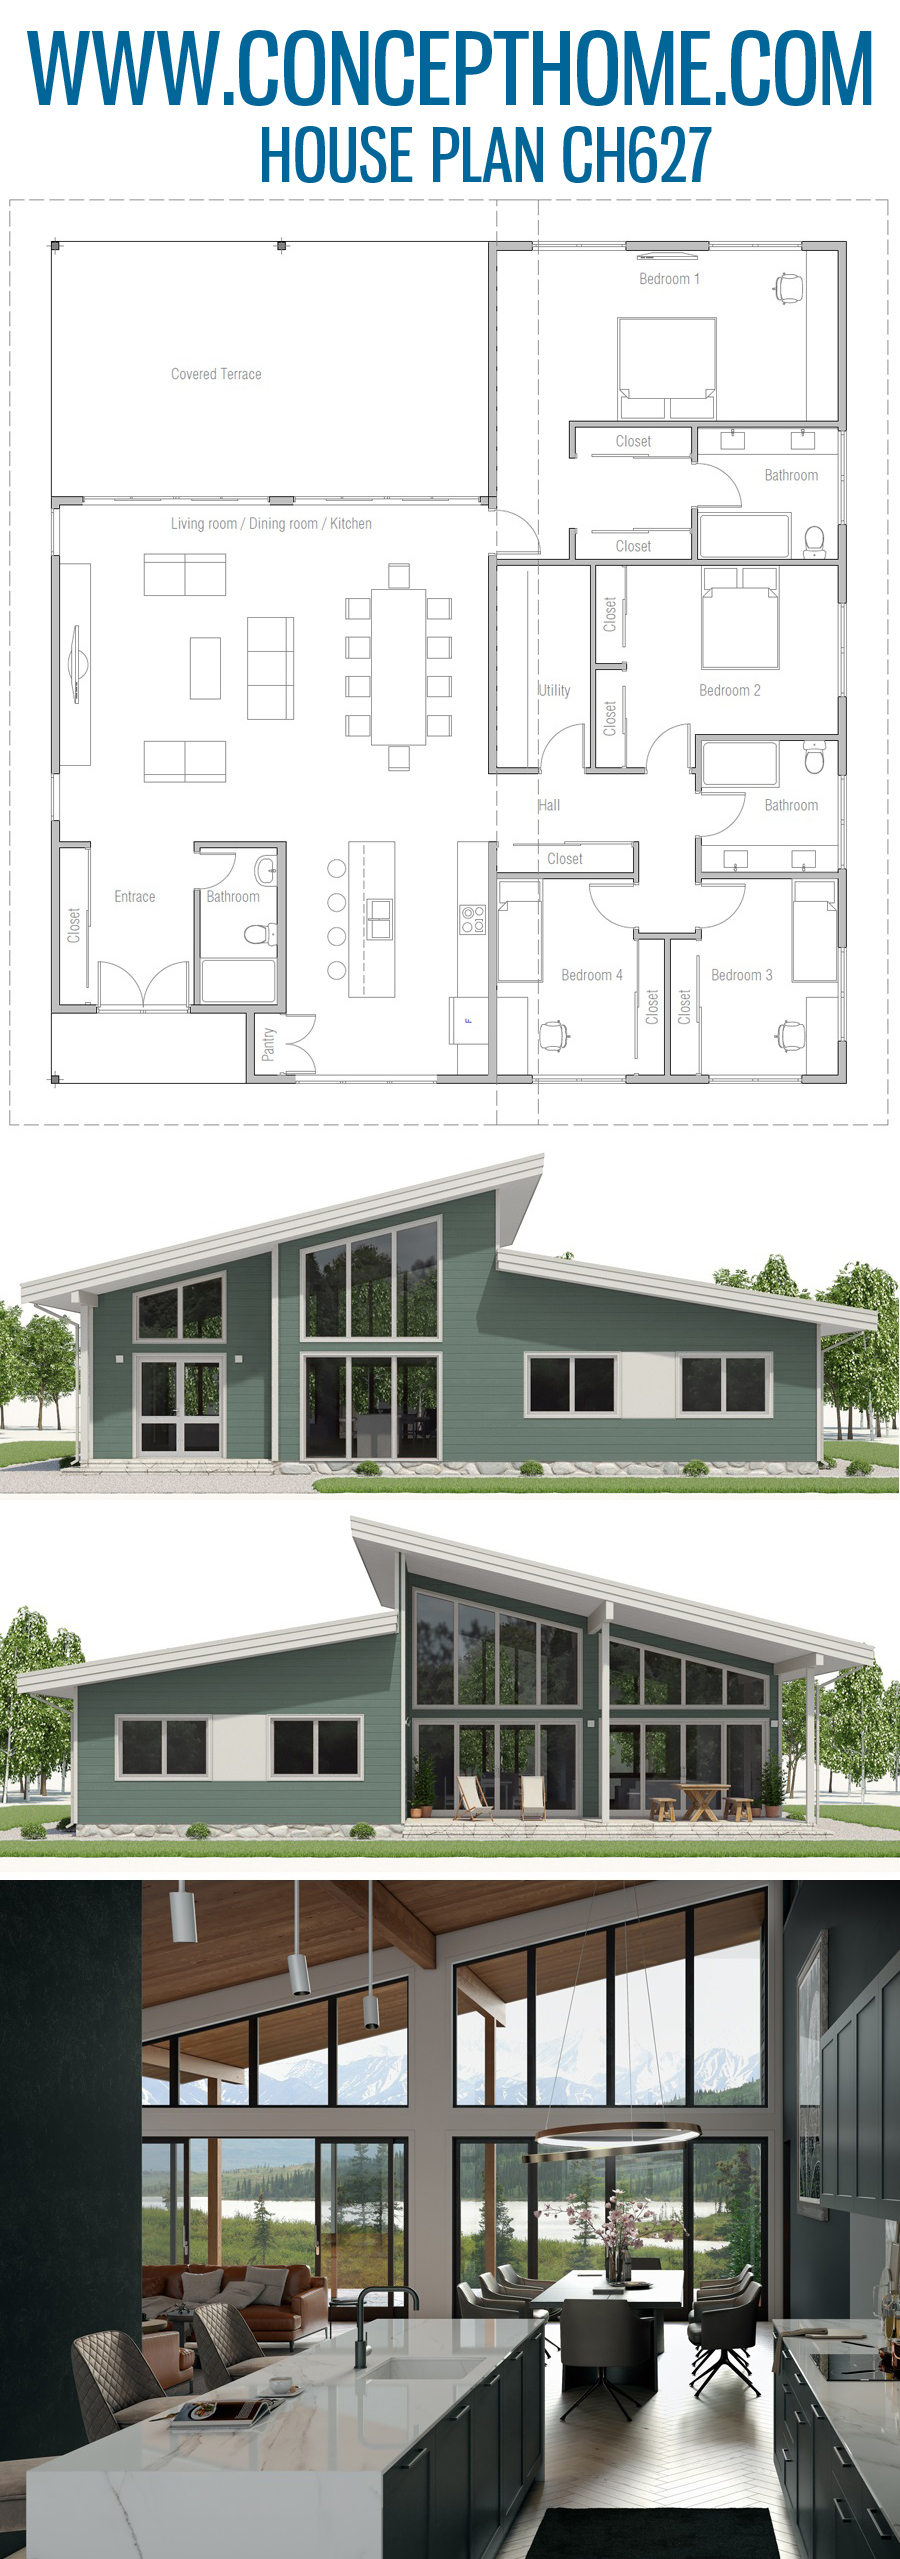 Photo of House Plan CH627